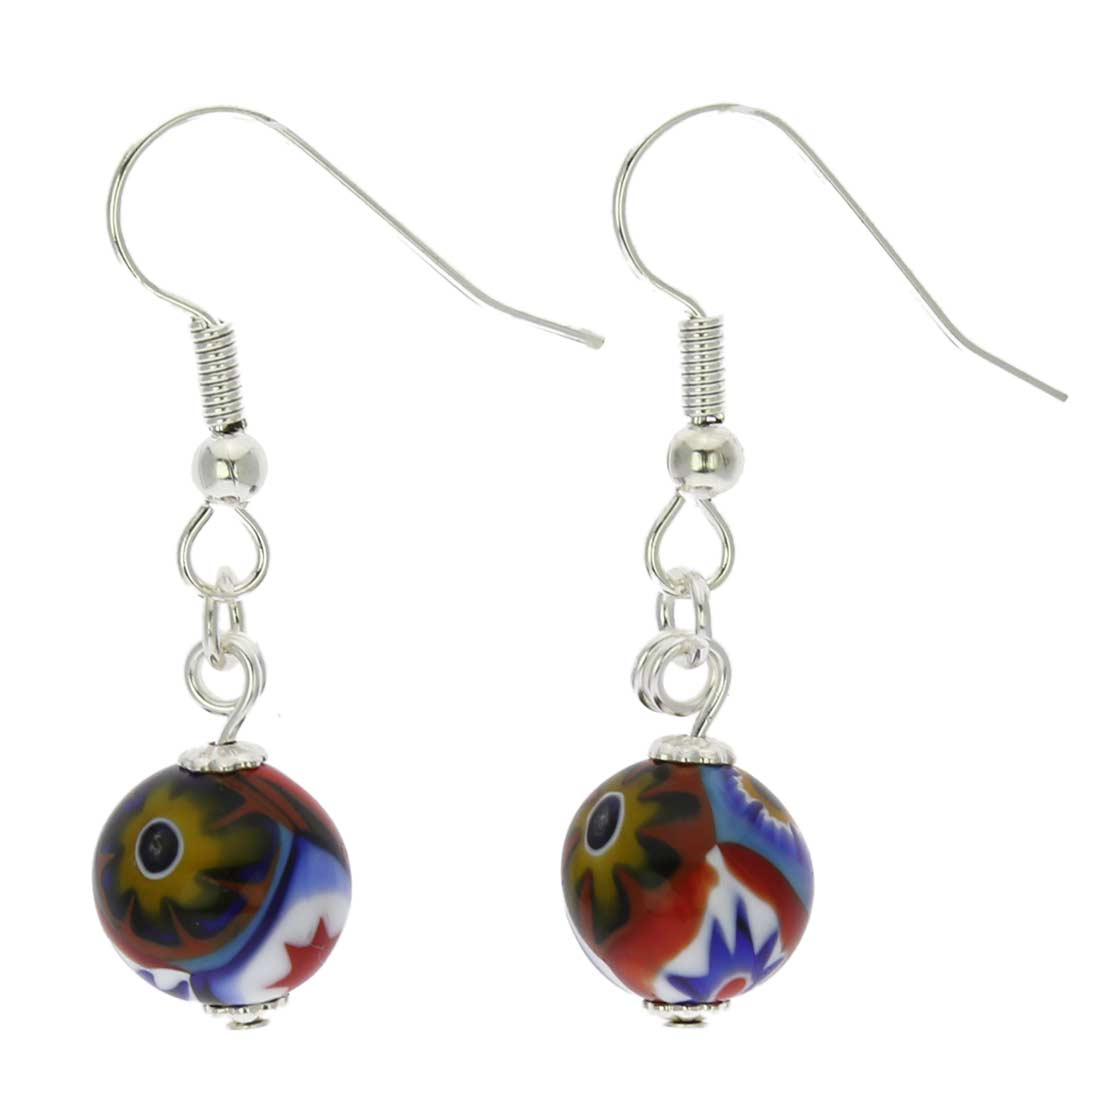 Murano Mosaic Millefiori Ball Earrings - Silver